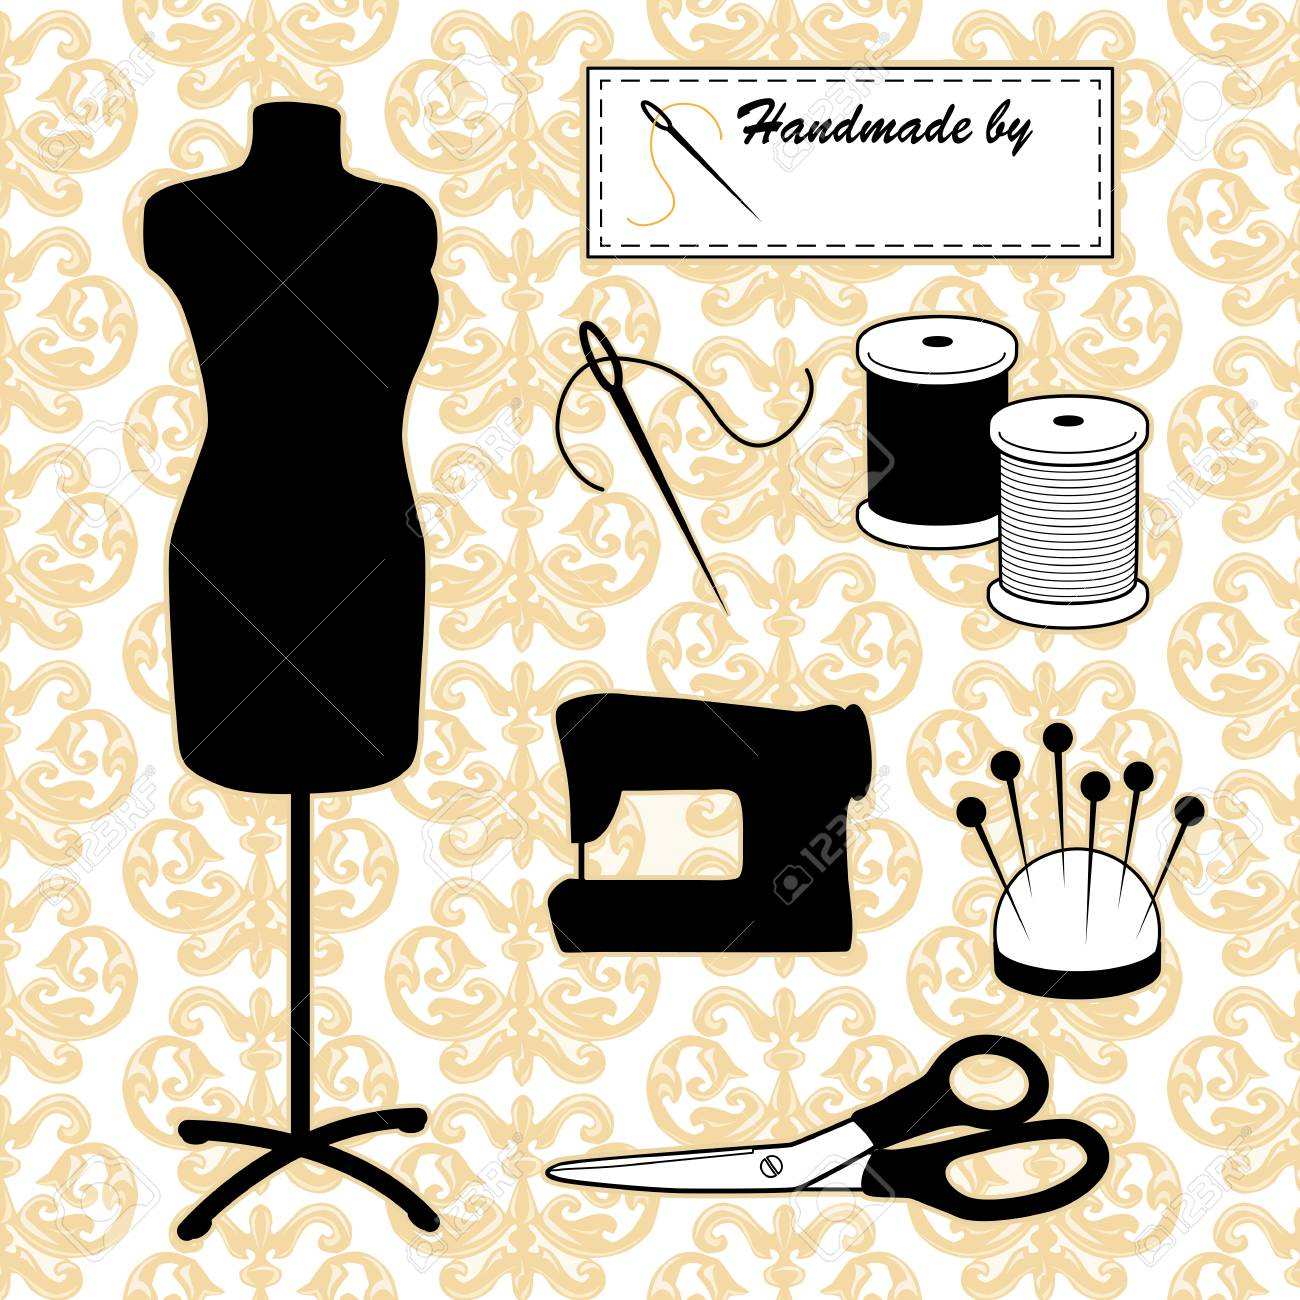 Model Mannequin, Do it yourself fashion sewing and tailoring tools - 113931822